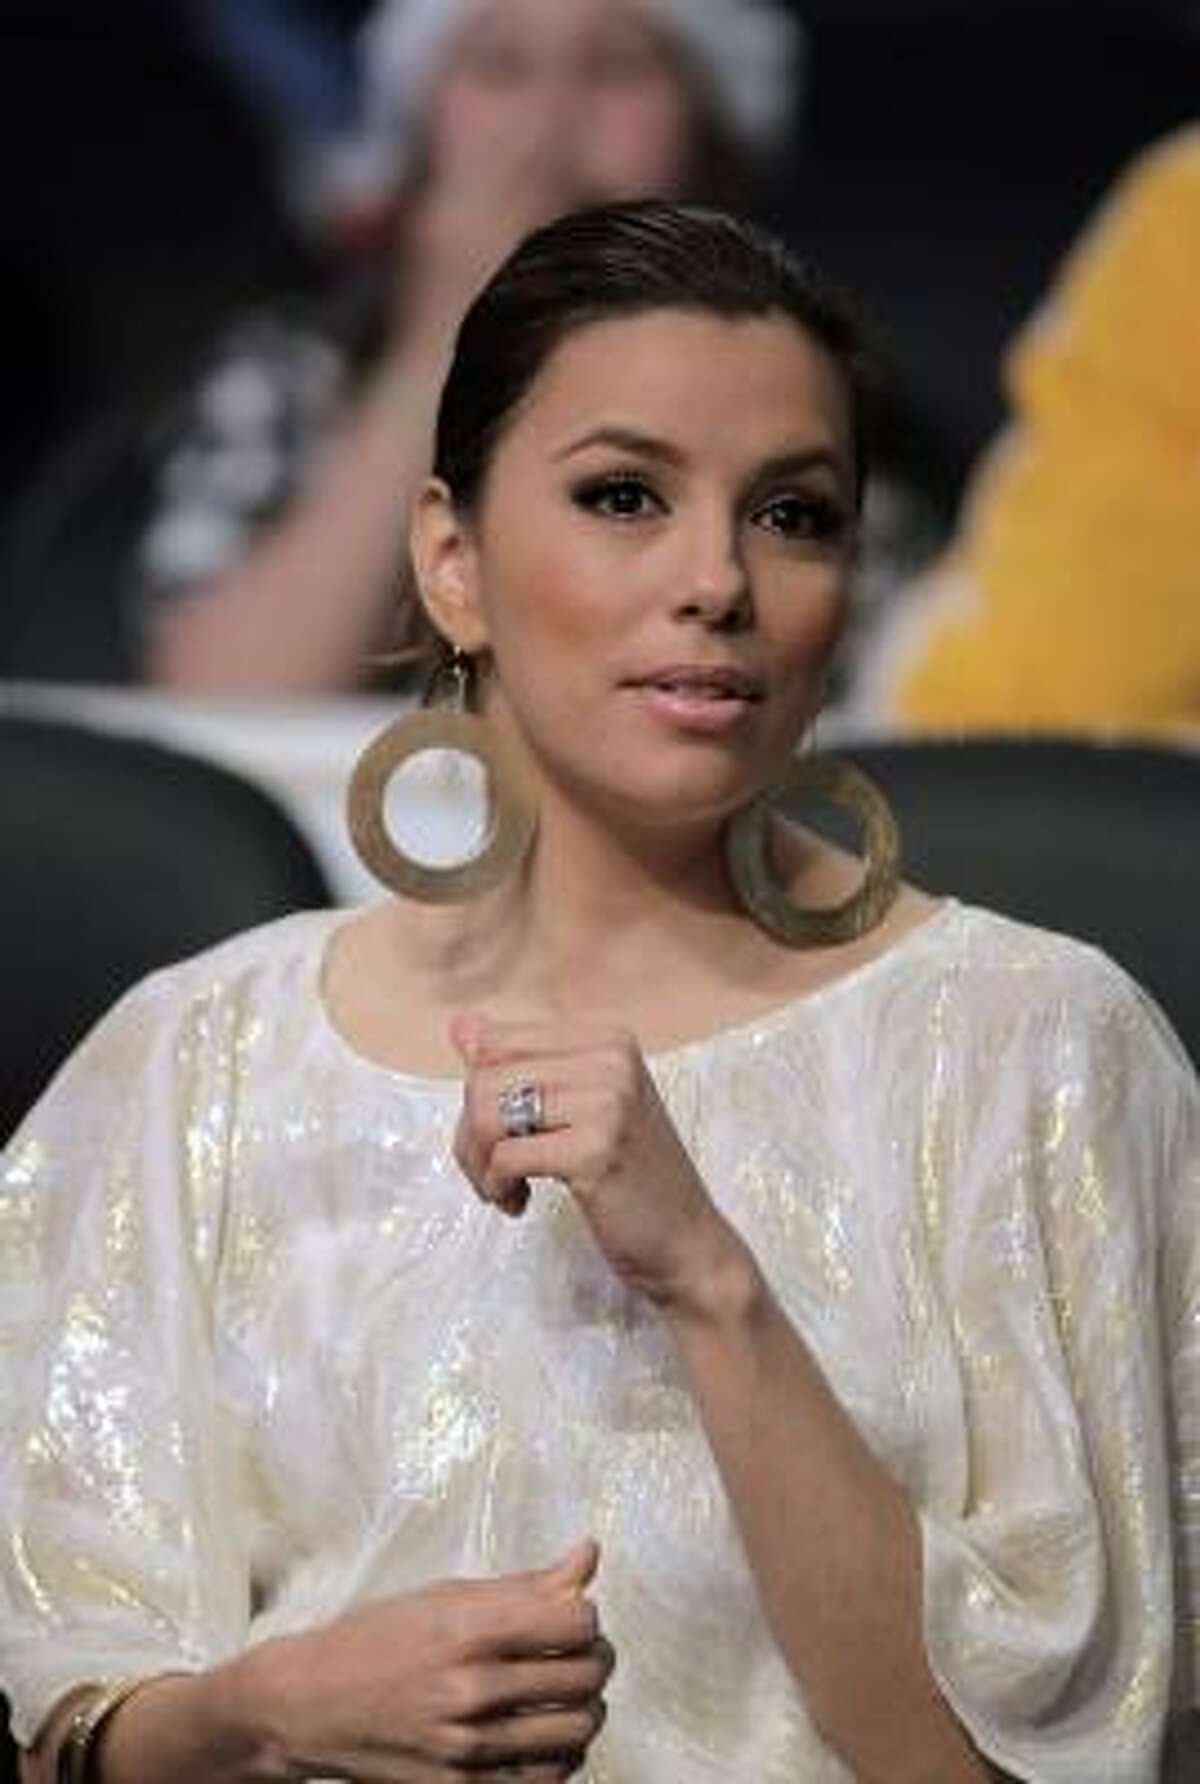 Actress Eva Longoria watches an NBA basketball game between Los Angeles Lakers and the San Antonio Spurs in Los Angeles.